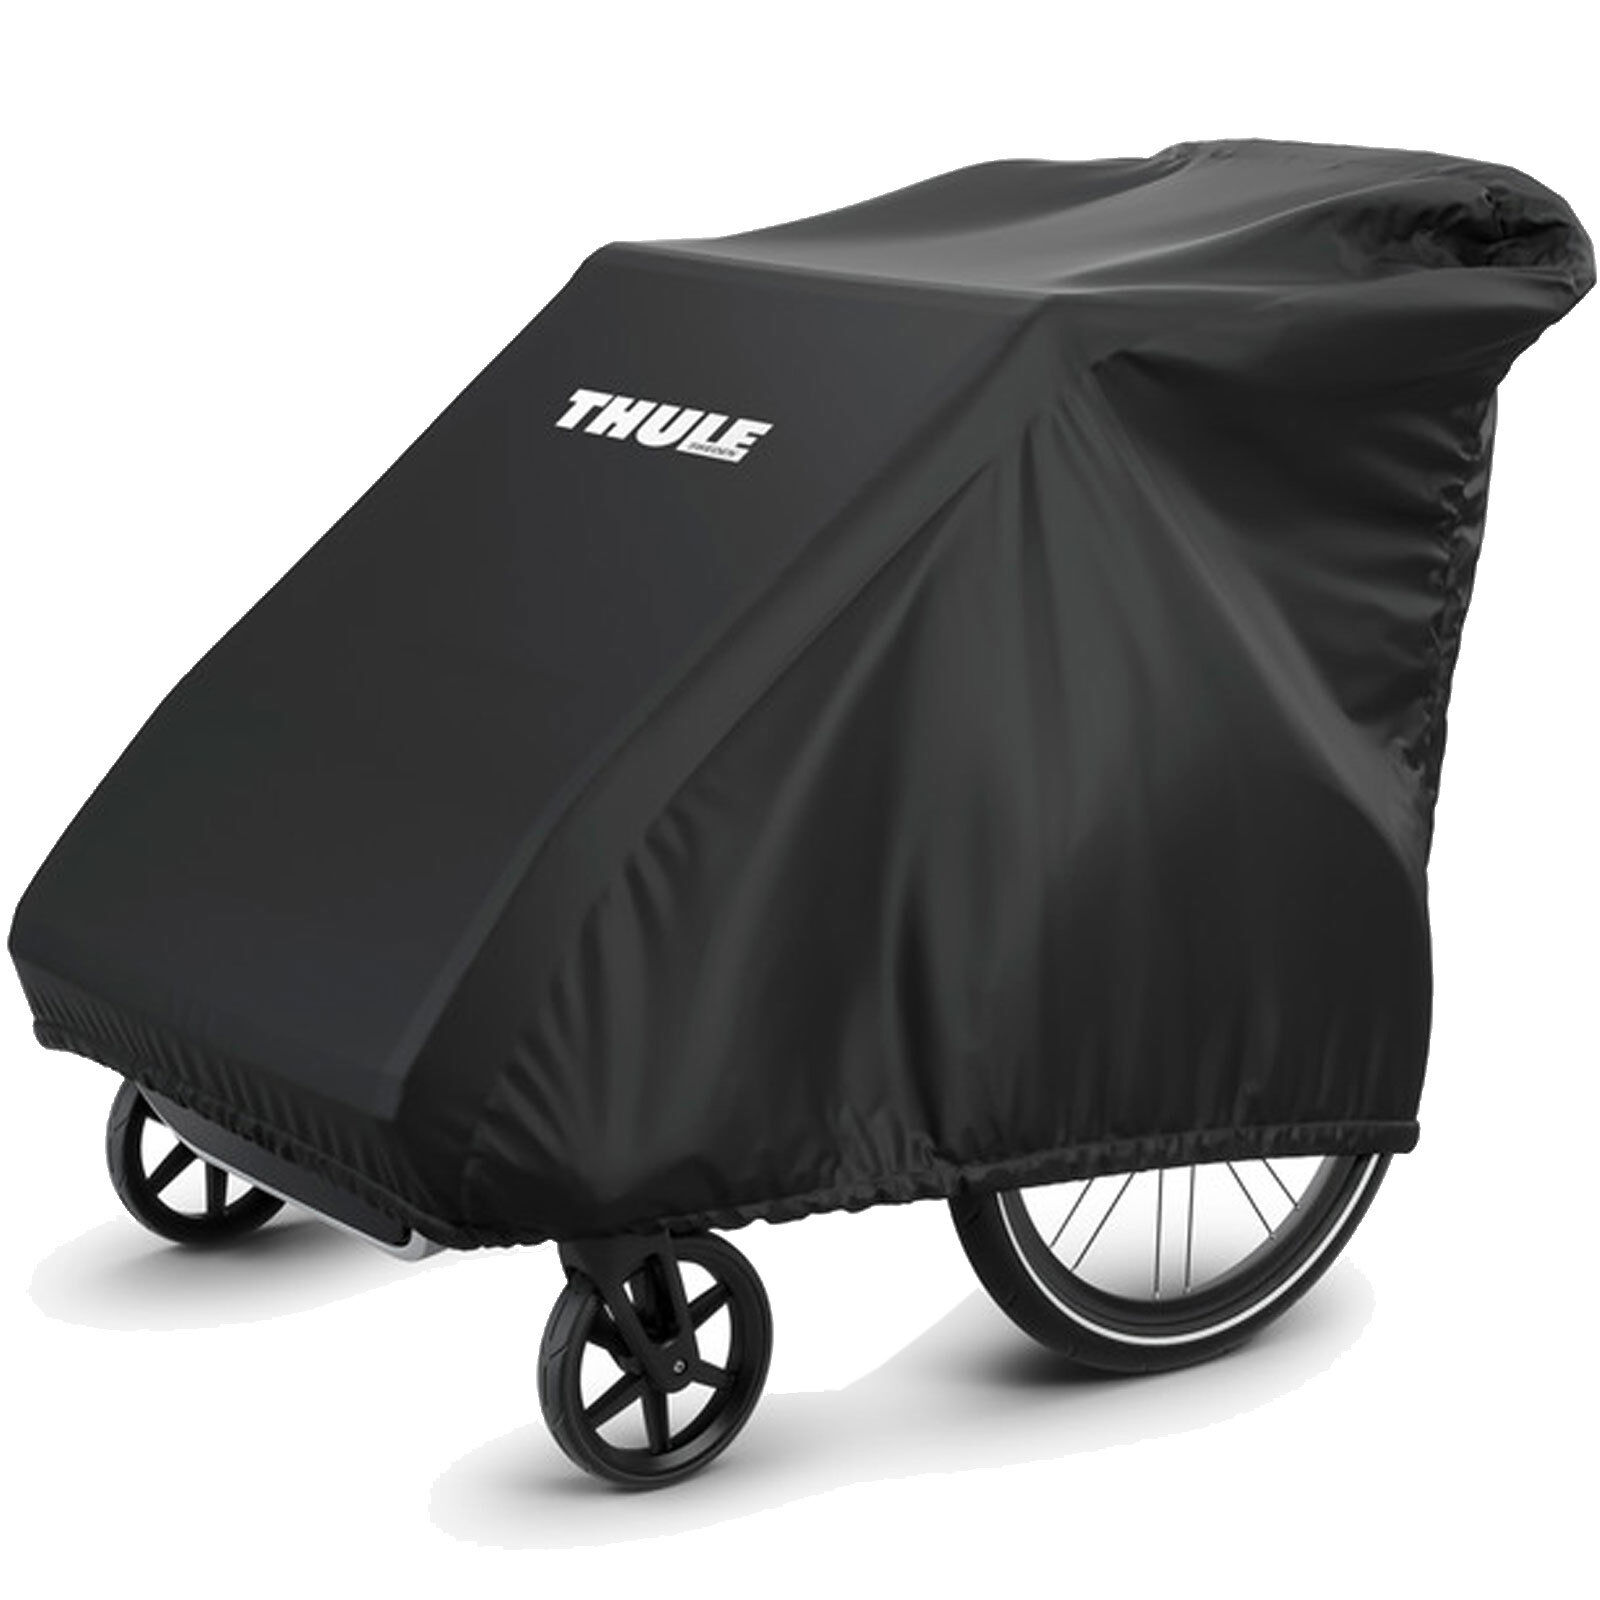 Thule Storage Cover for Multisportanhänger Bicycle Trailer Trailer